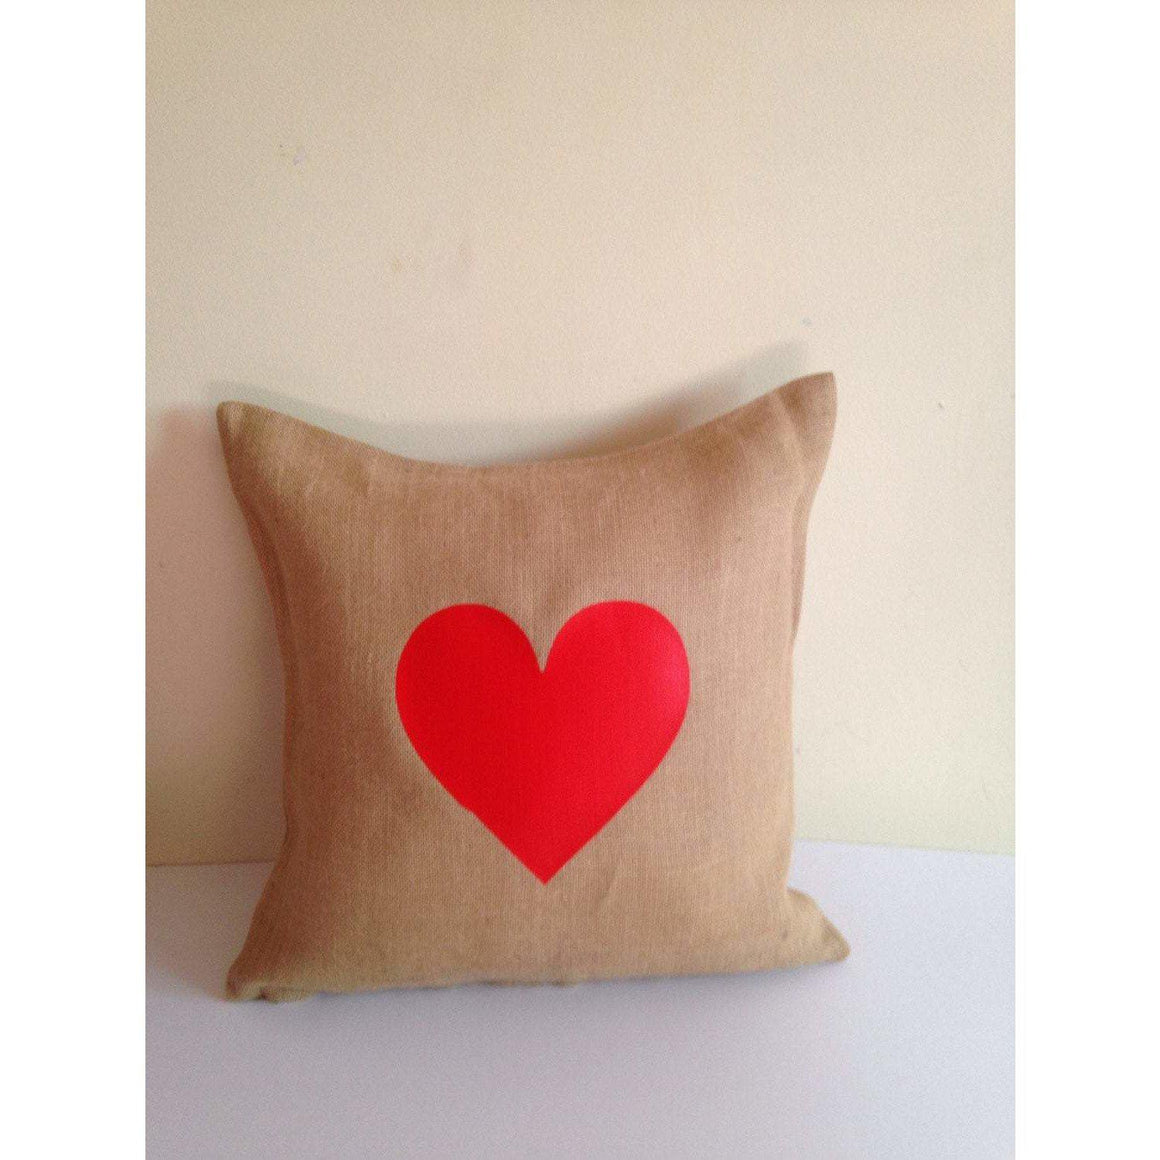 Girlfriend gift ideas christmas, Valentine Unique Gifts for her, Girl Friend Gift, Burlap Pillow covers, Rustic Heart Pillows - Snazzy Living